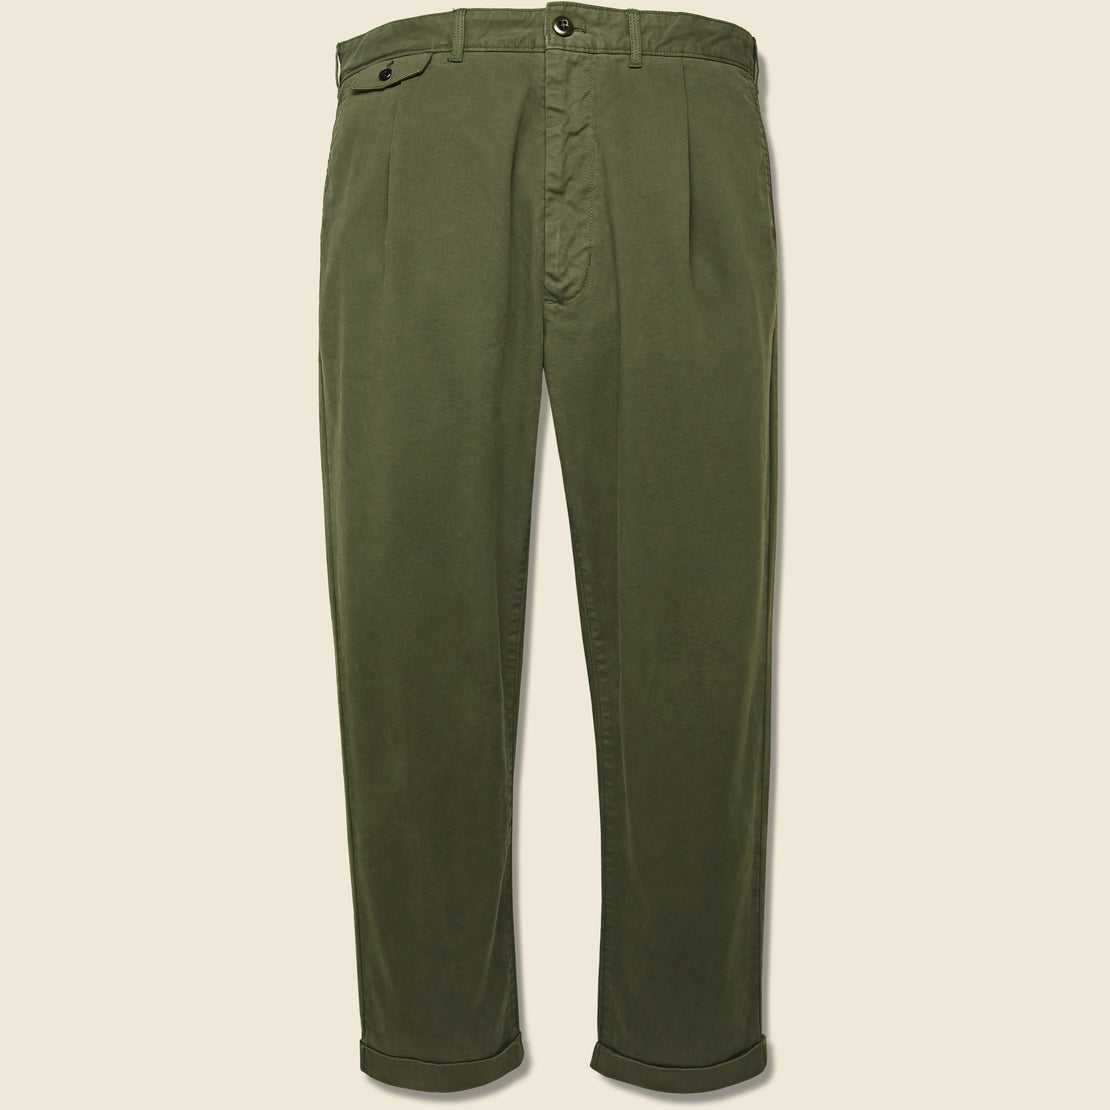 Alex Mill Standard Pleated Chino - Military Olive